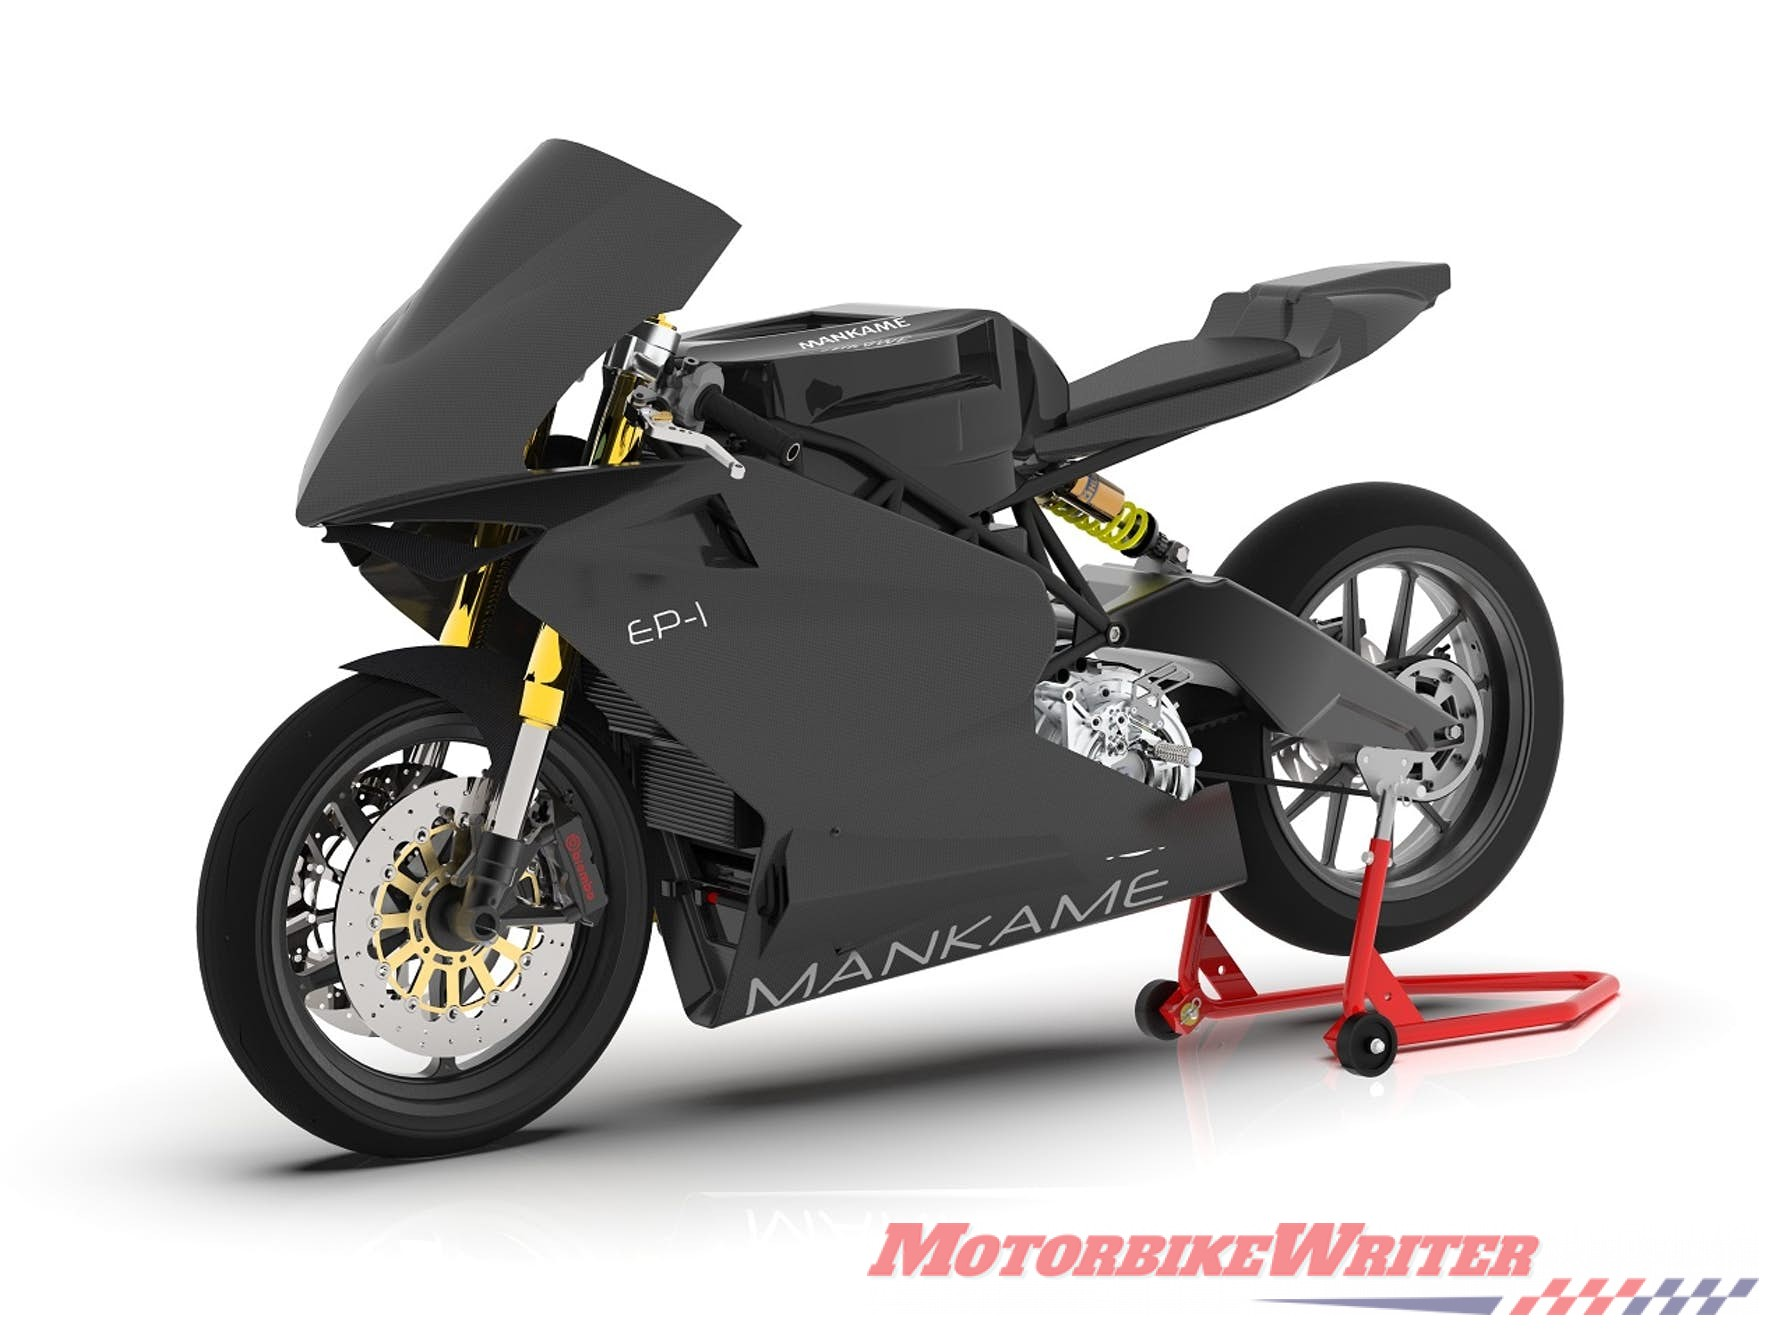 Mankame Motors EP-1 electric motorcycle with a claimed 480km range vector